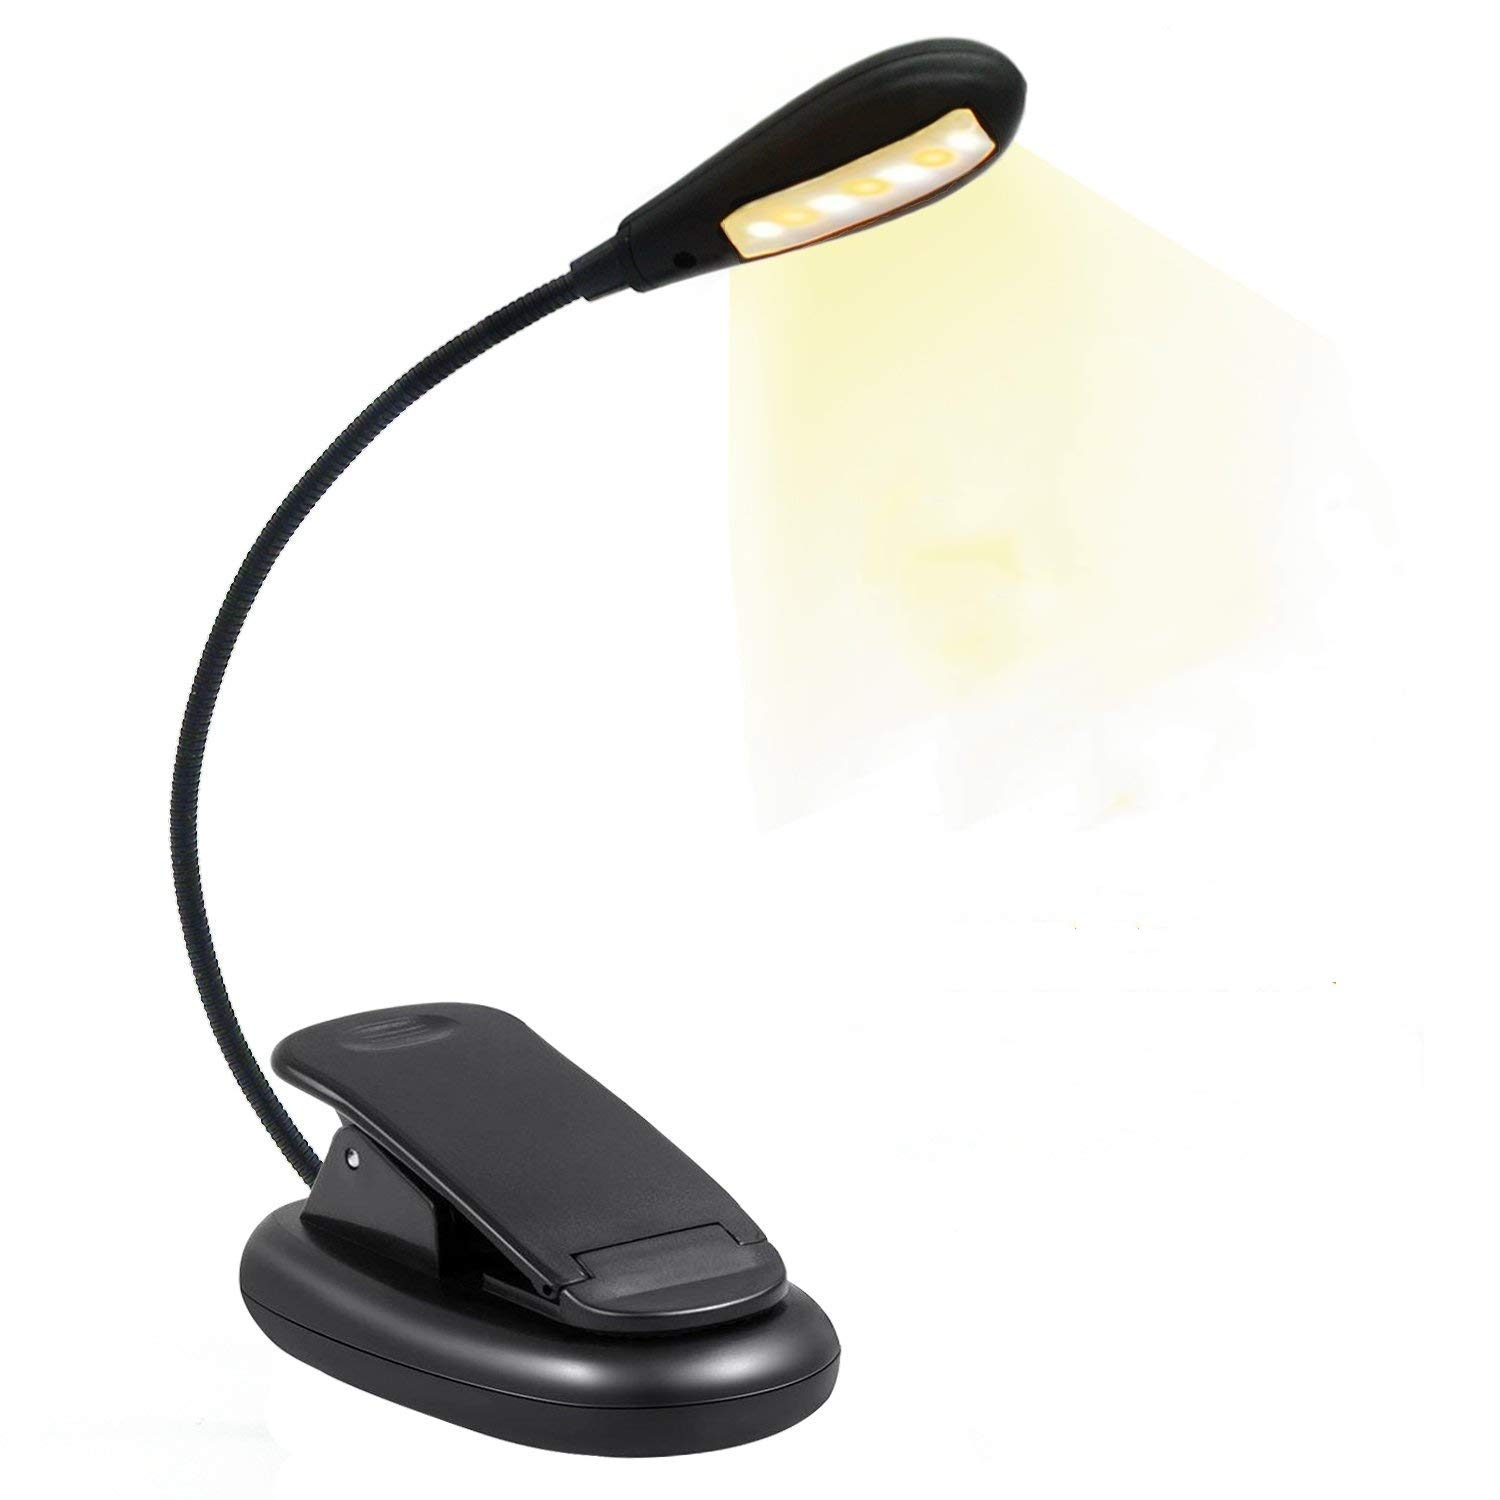 BBKANI Rechargeable 7 LED Reading Light, Easy Clip on Book Lights for Reading in Bed. 3 Brightness Eye-Care(Warm/Cool White), Lightweight, Handy,Up to 60 Hours Reading, for Book, Kindle and Laptop